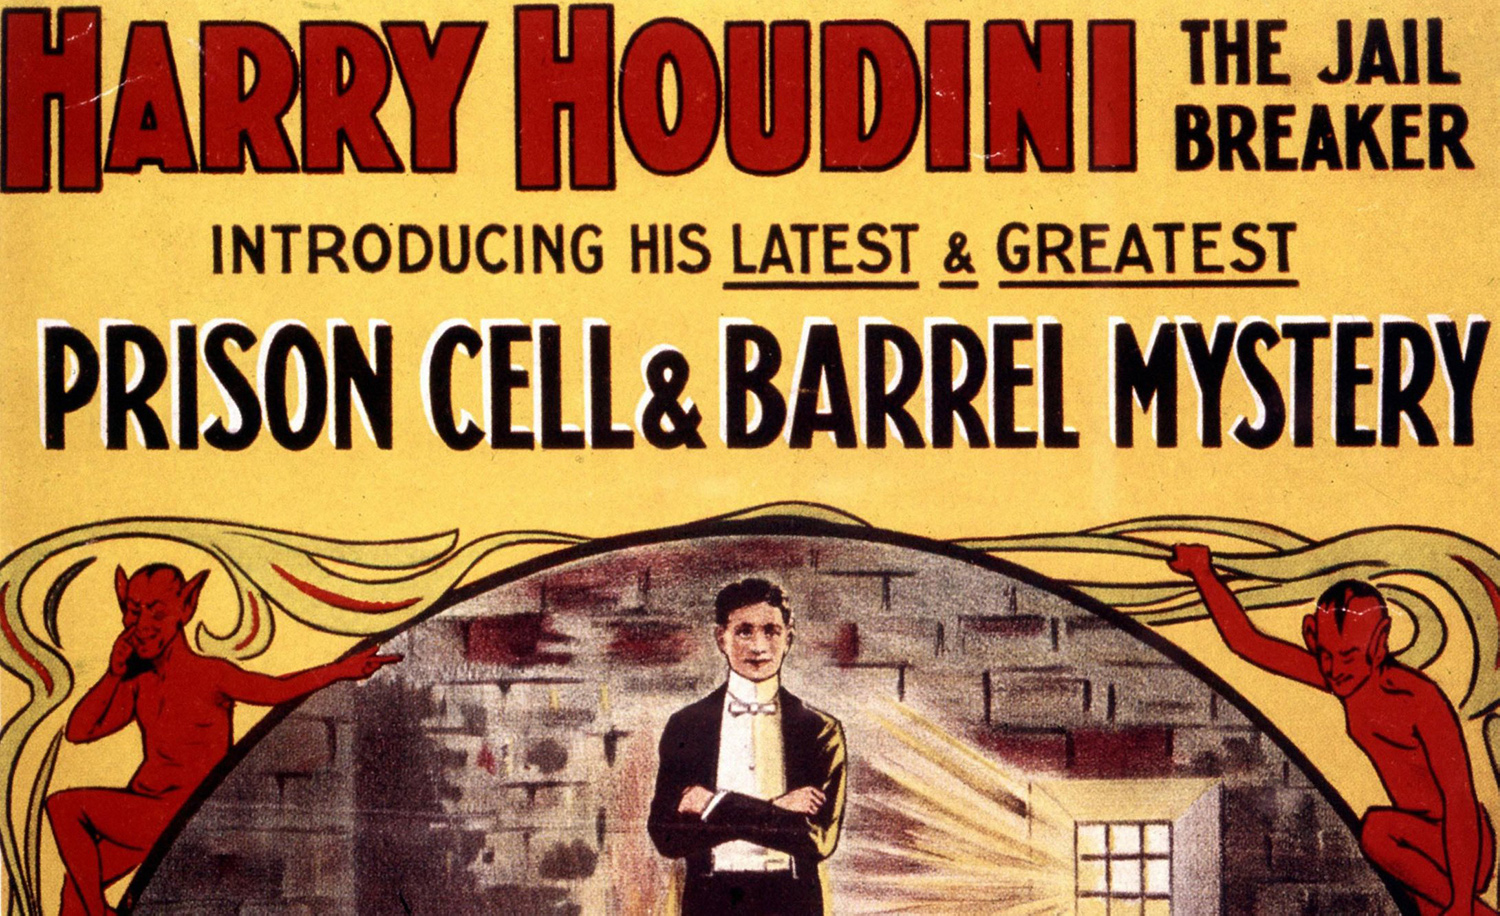 A poster for a performance of Harry Houdini's in the late 19th-century. Alamy.